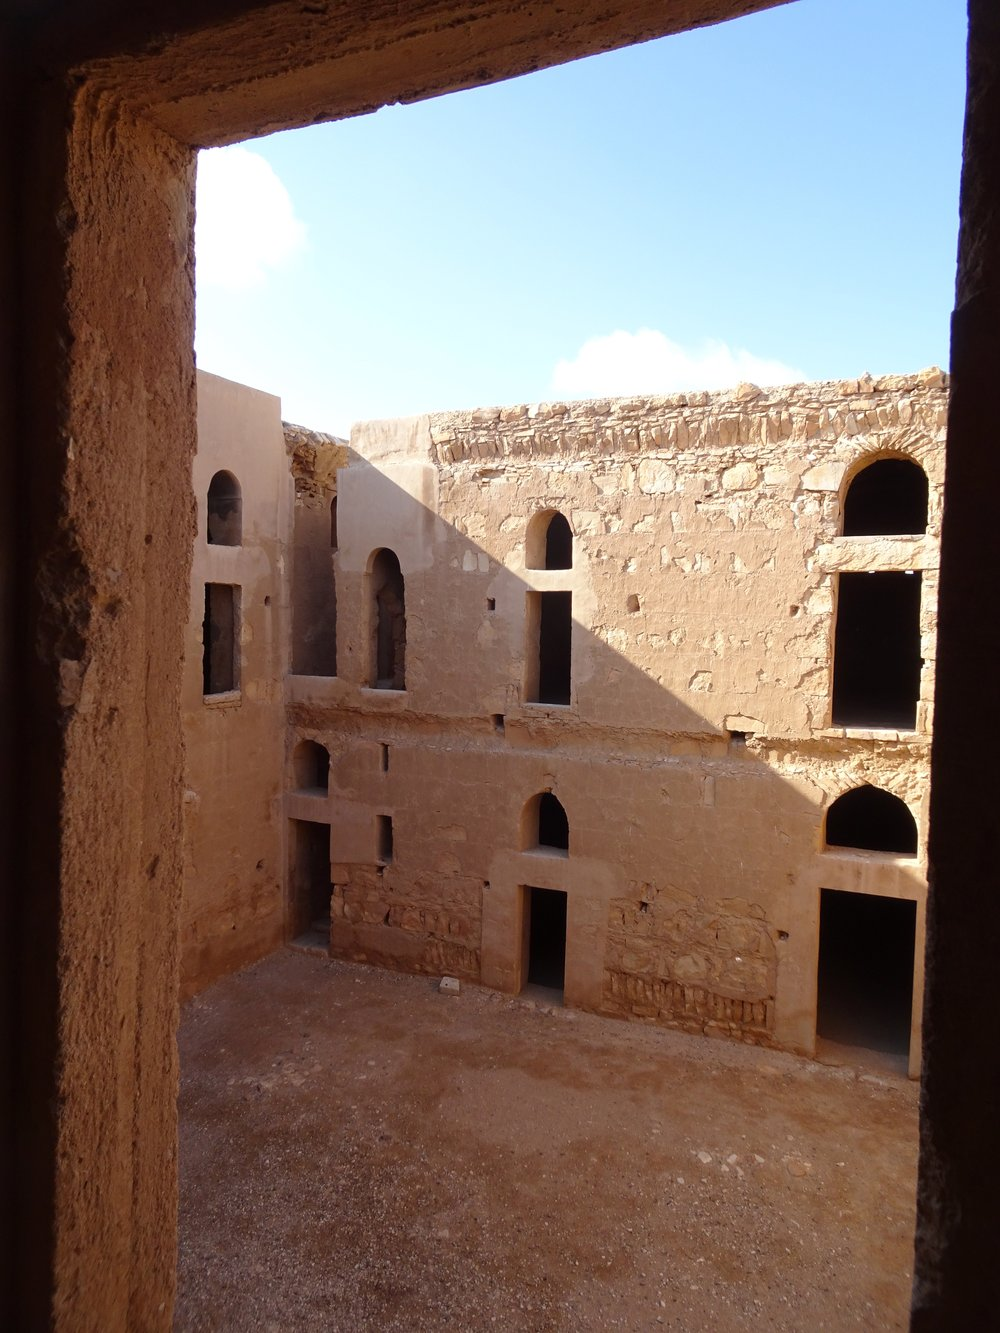 Inside an Umayyad castle